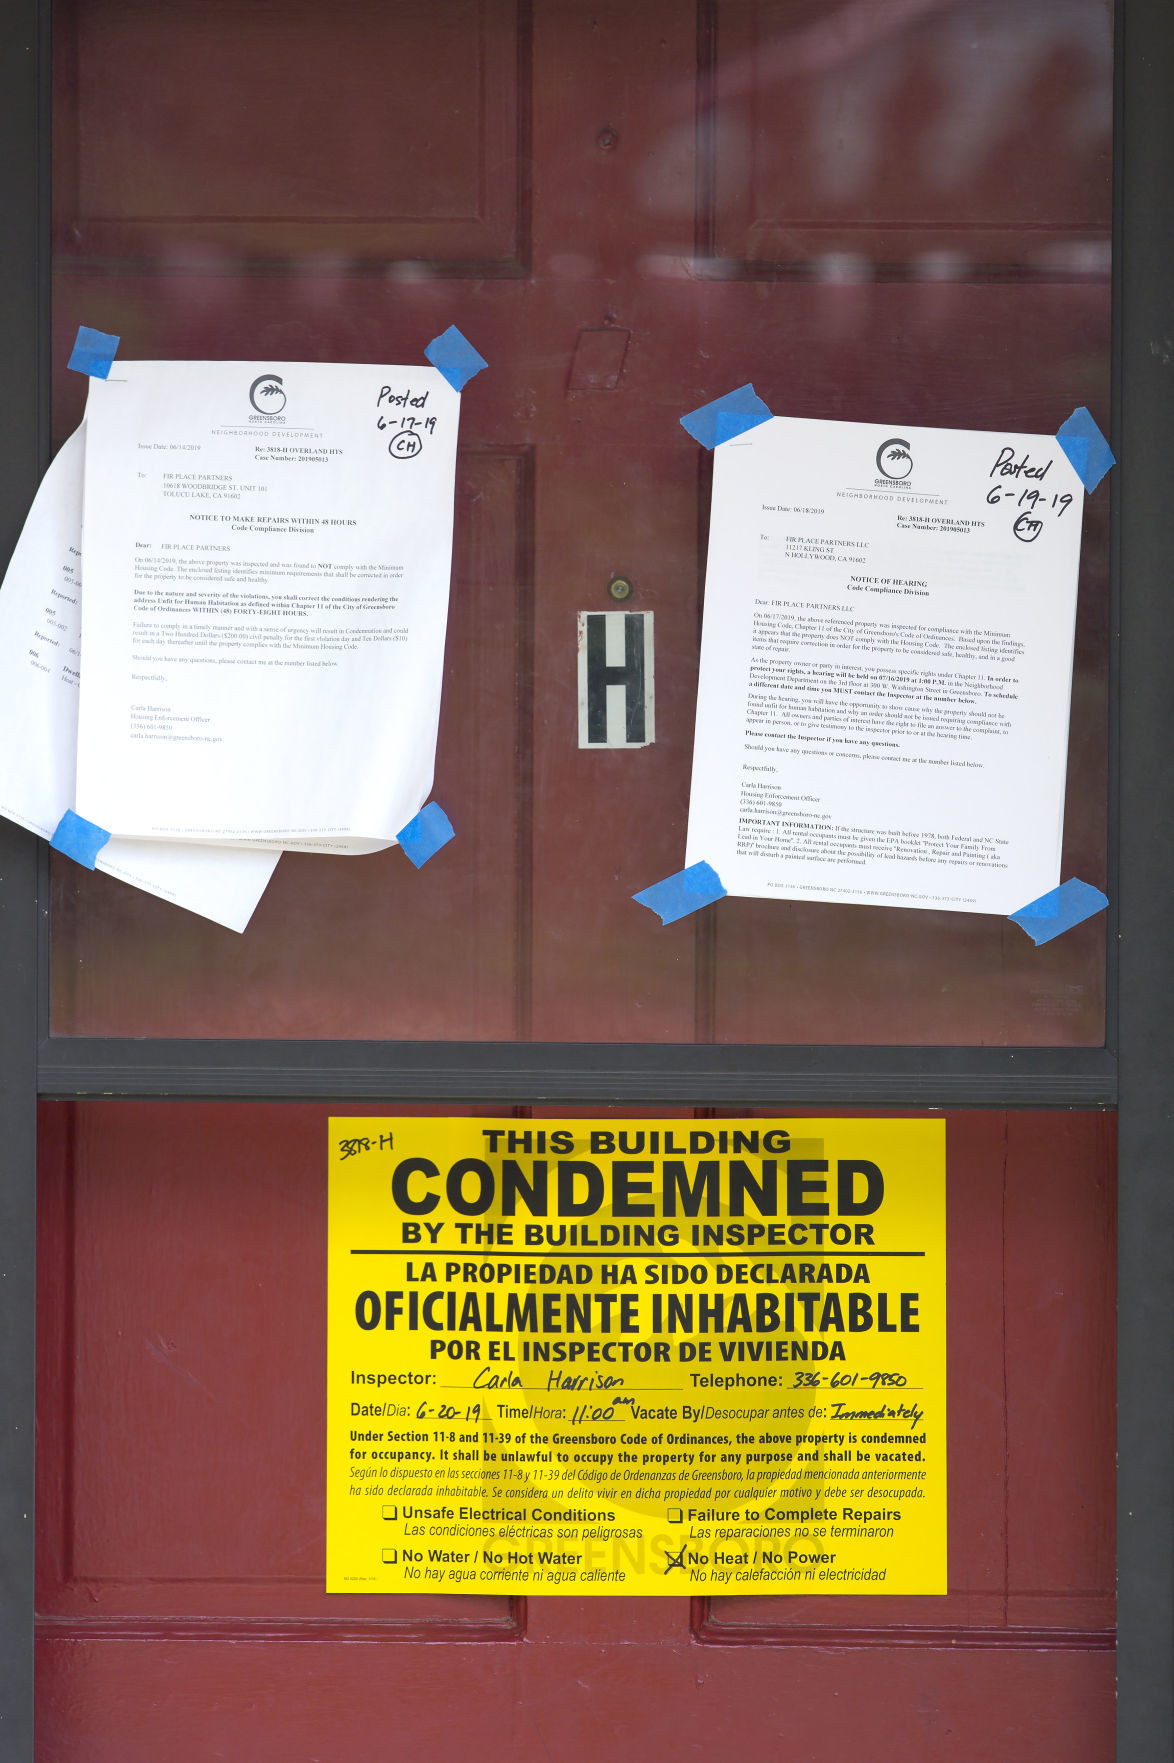 Overland Heights apartments condemned